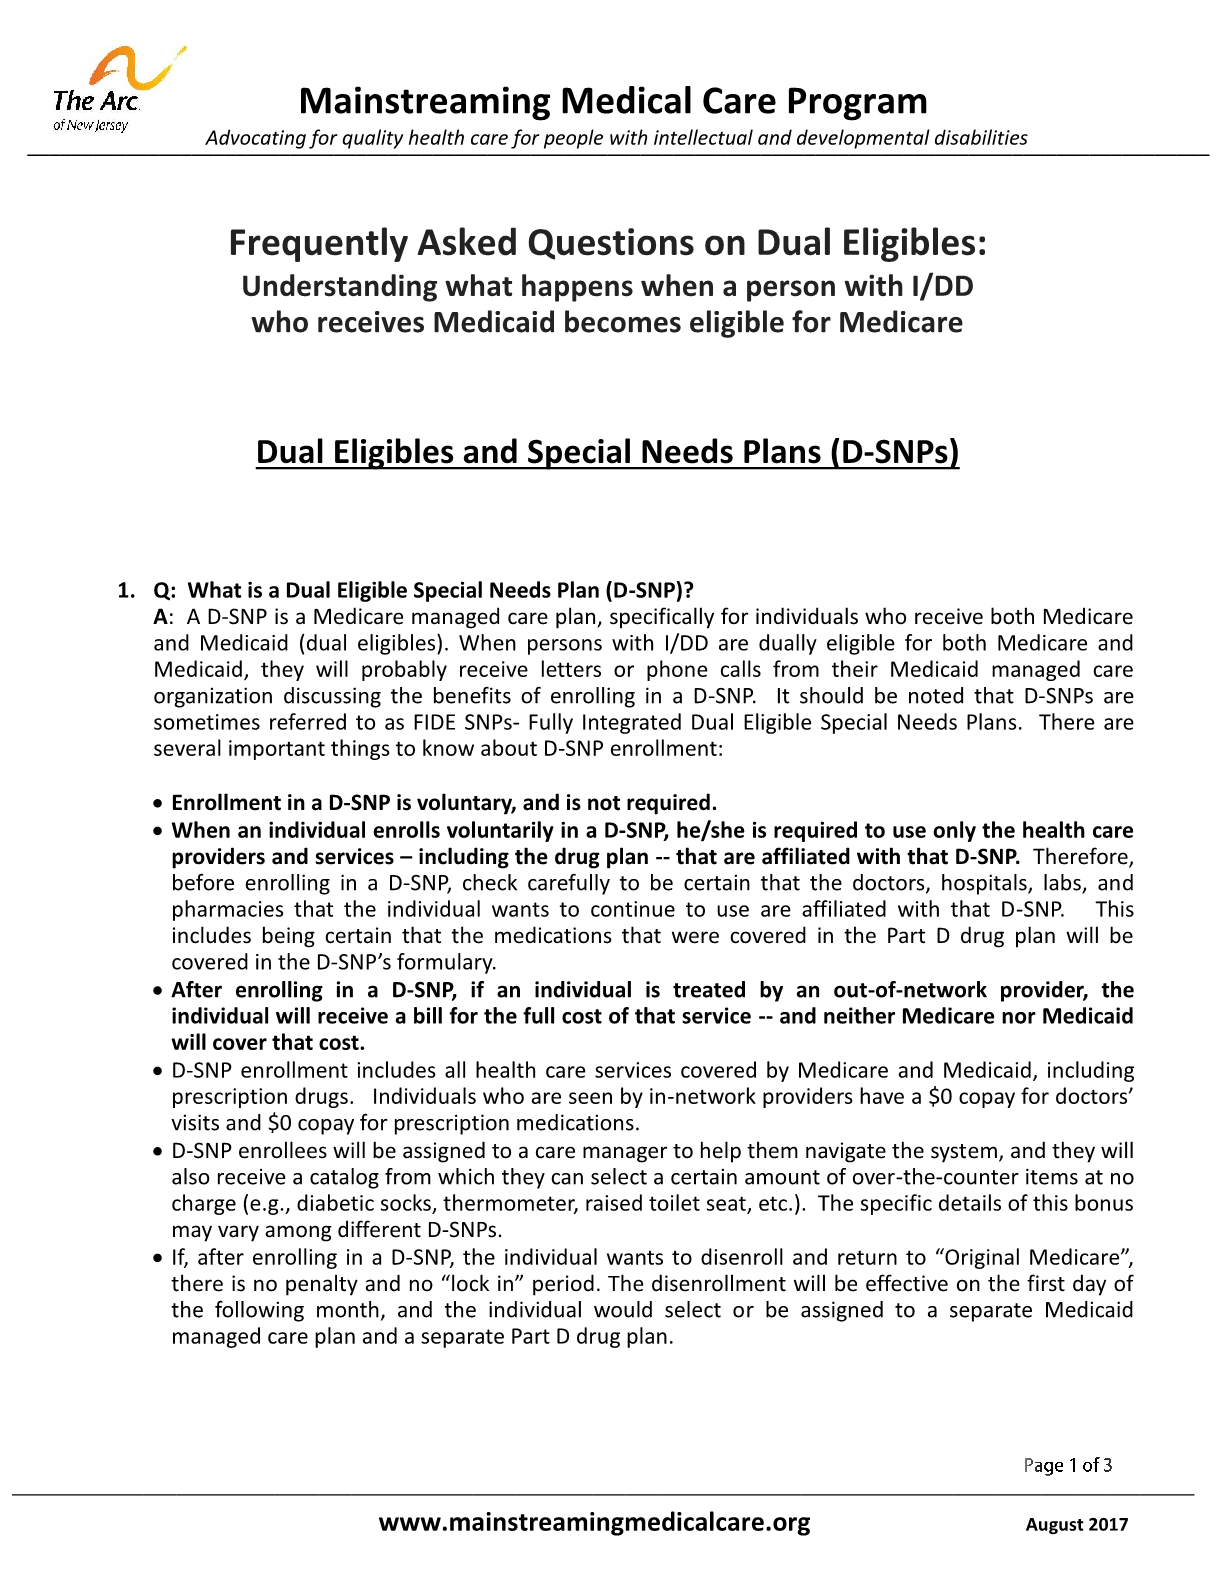 FAQ on Dual Eligibles: Understanding what happens when a person with I/DD who receives Medicaid becomes eligible for Medicare - Dual Eligibles and Special Needs Plans (D-SNPs)